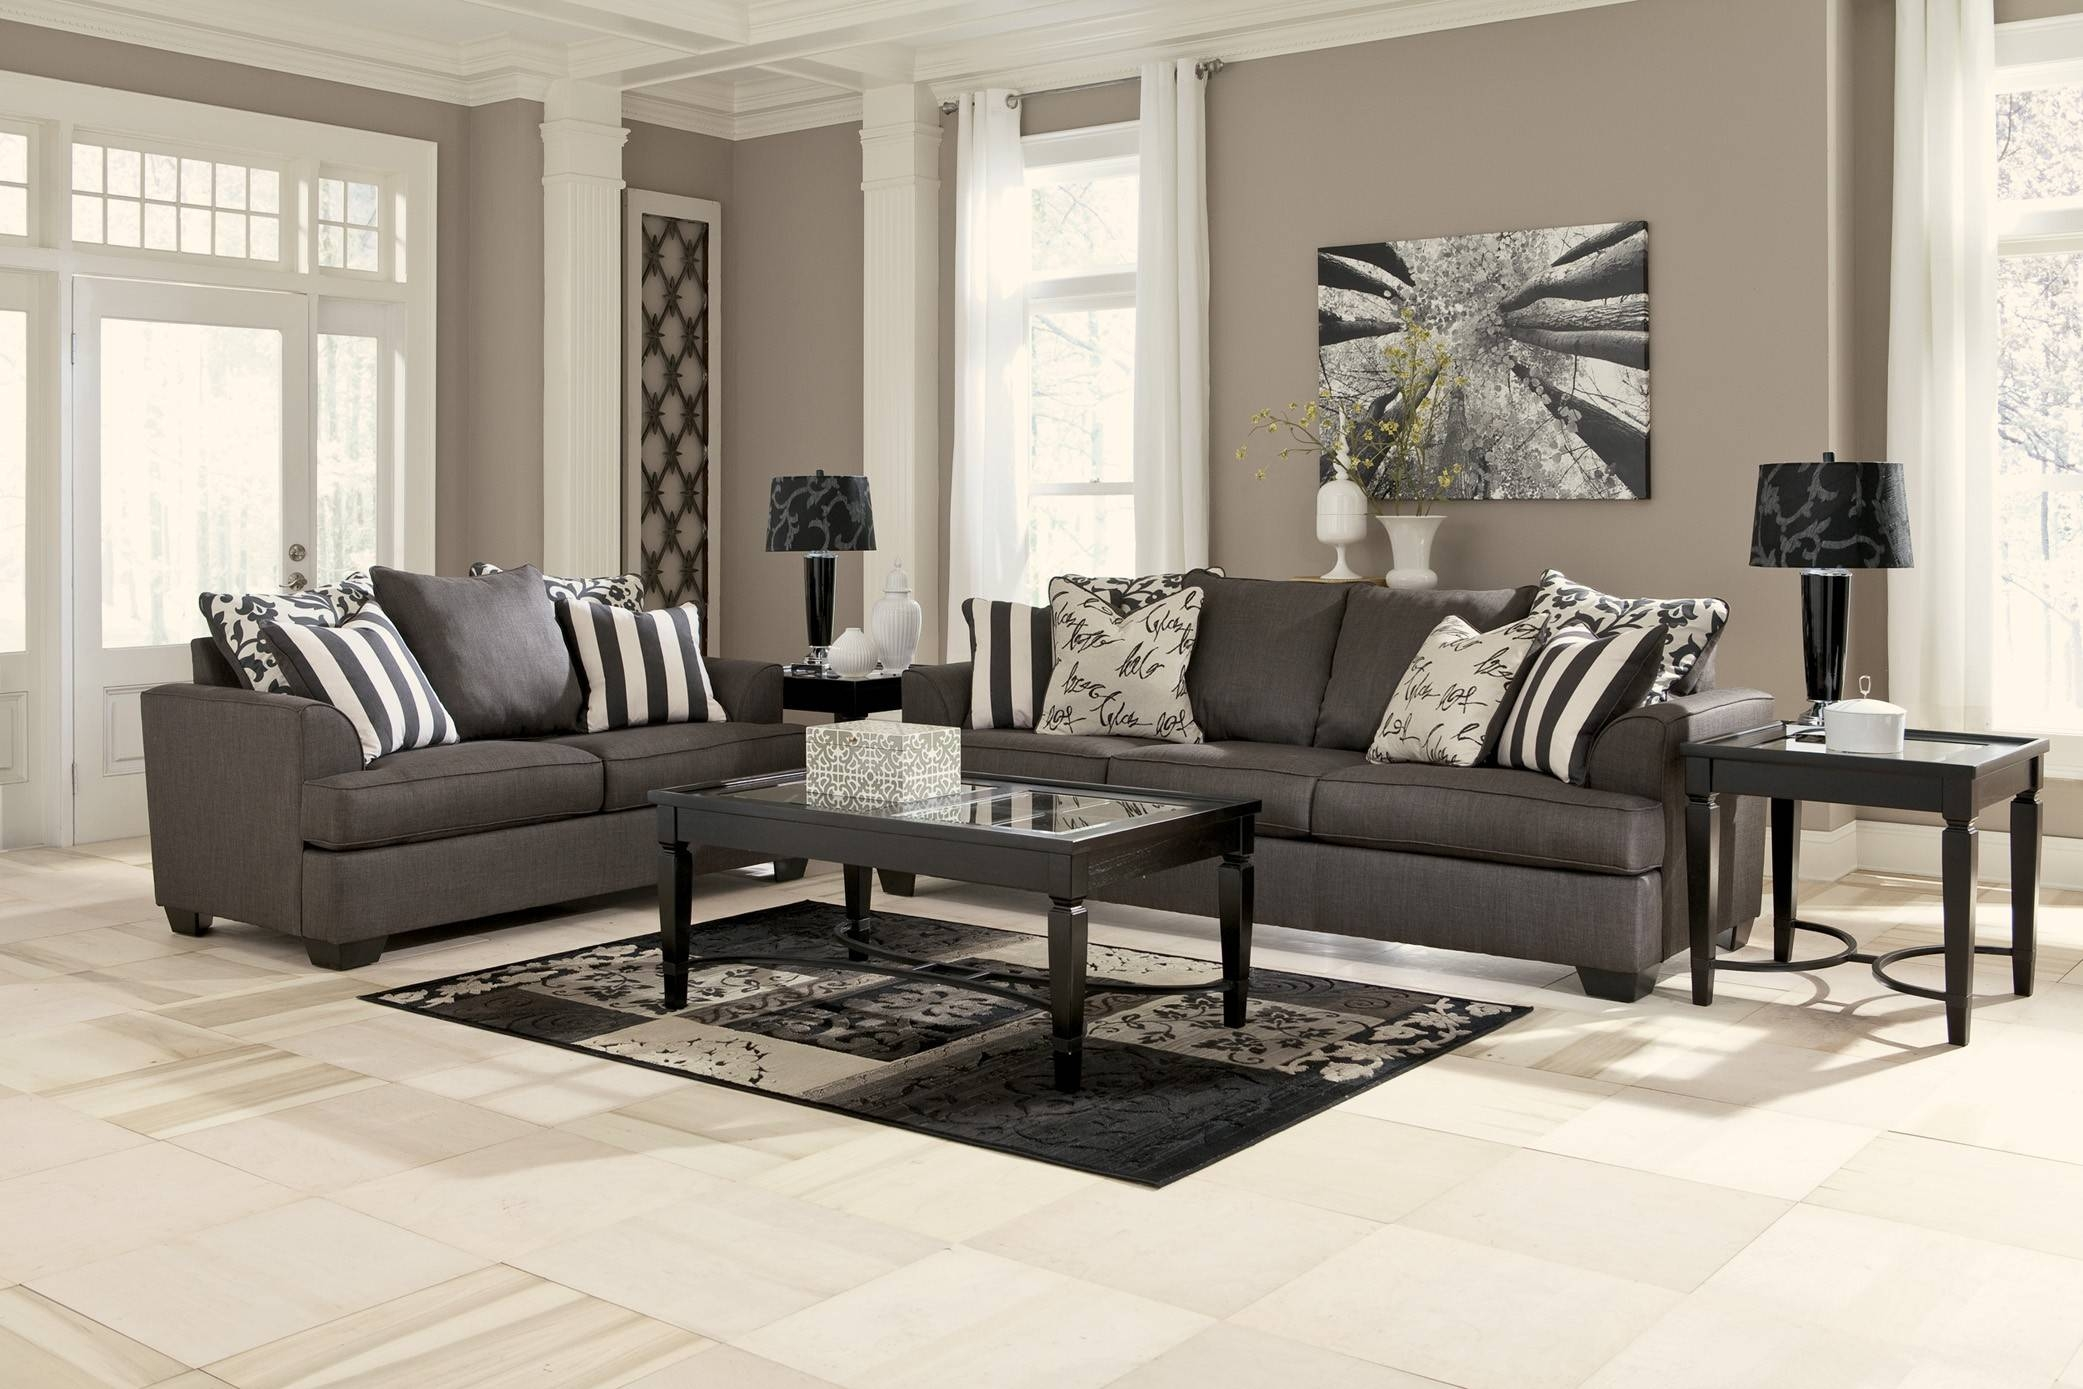 Charcoal Grey Sofa Decorating Ideas | Tehranmix Decoration in Charcoal Grey Sofas (Image 7 of 30)